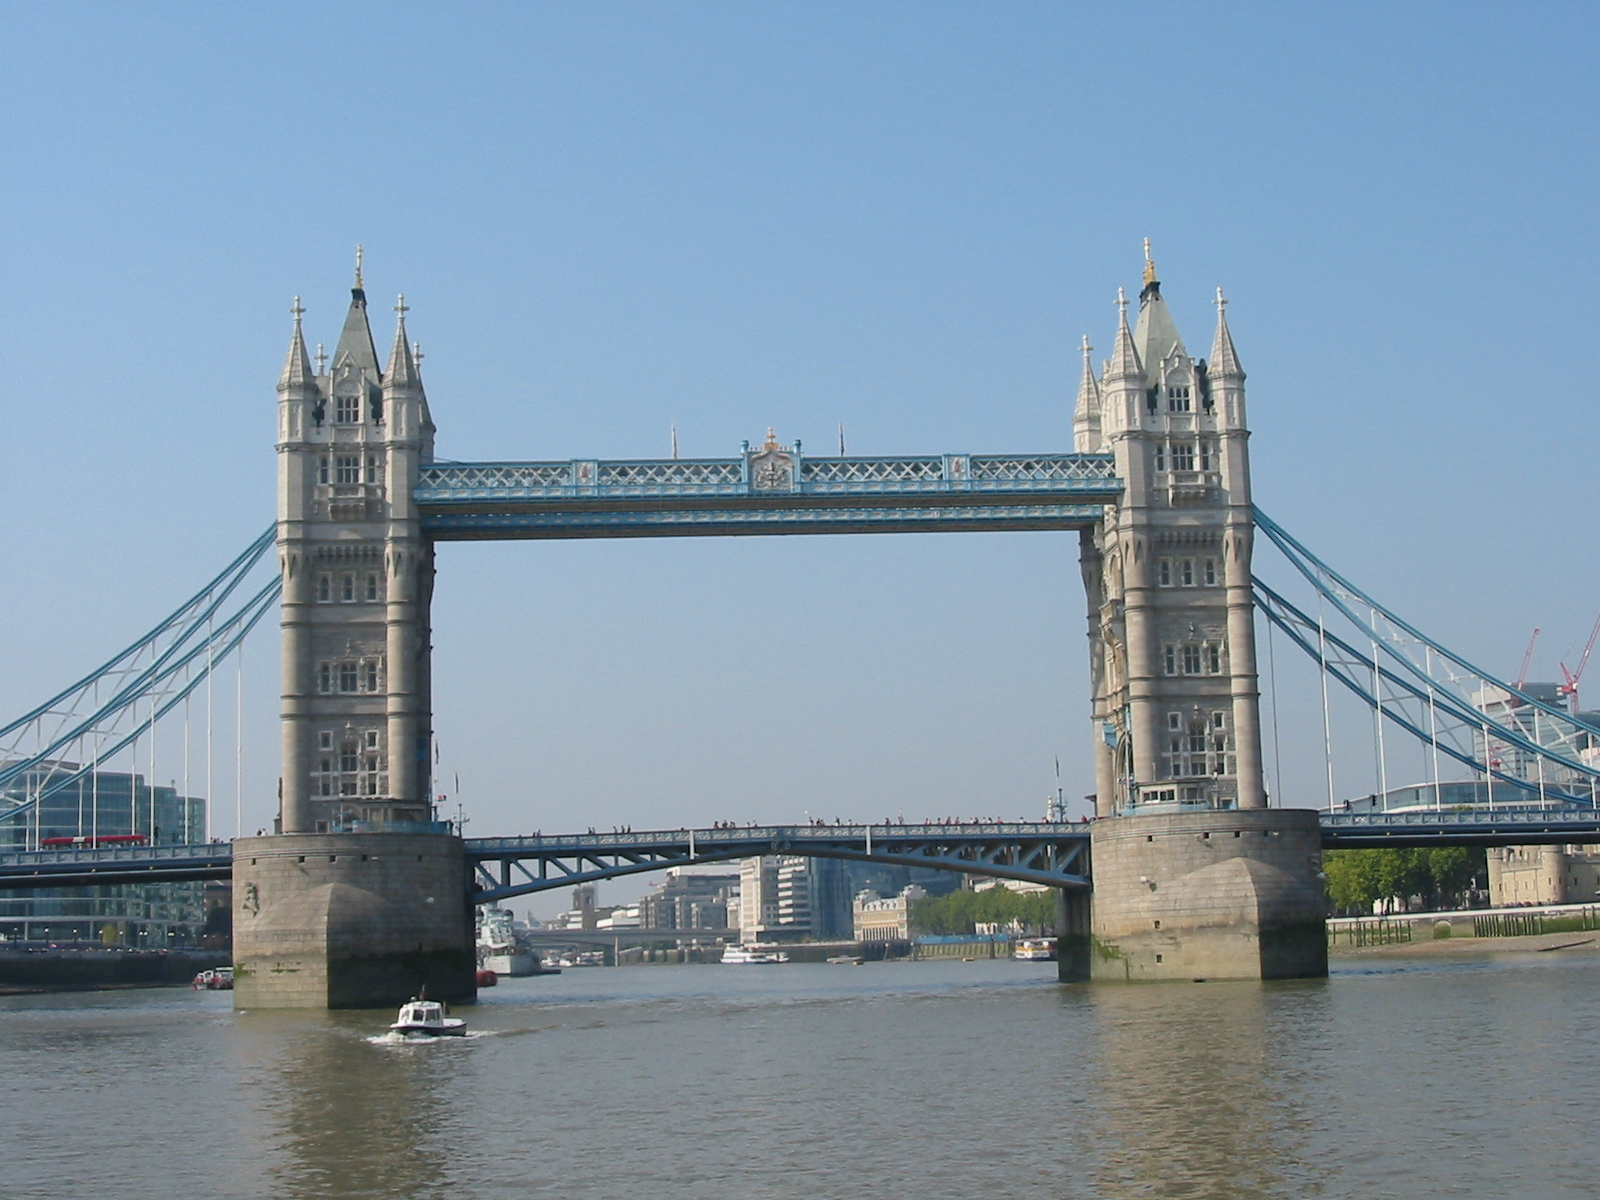 File:Tower Bridge London.jpg